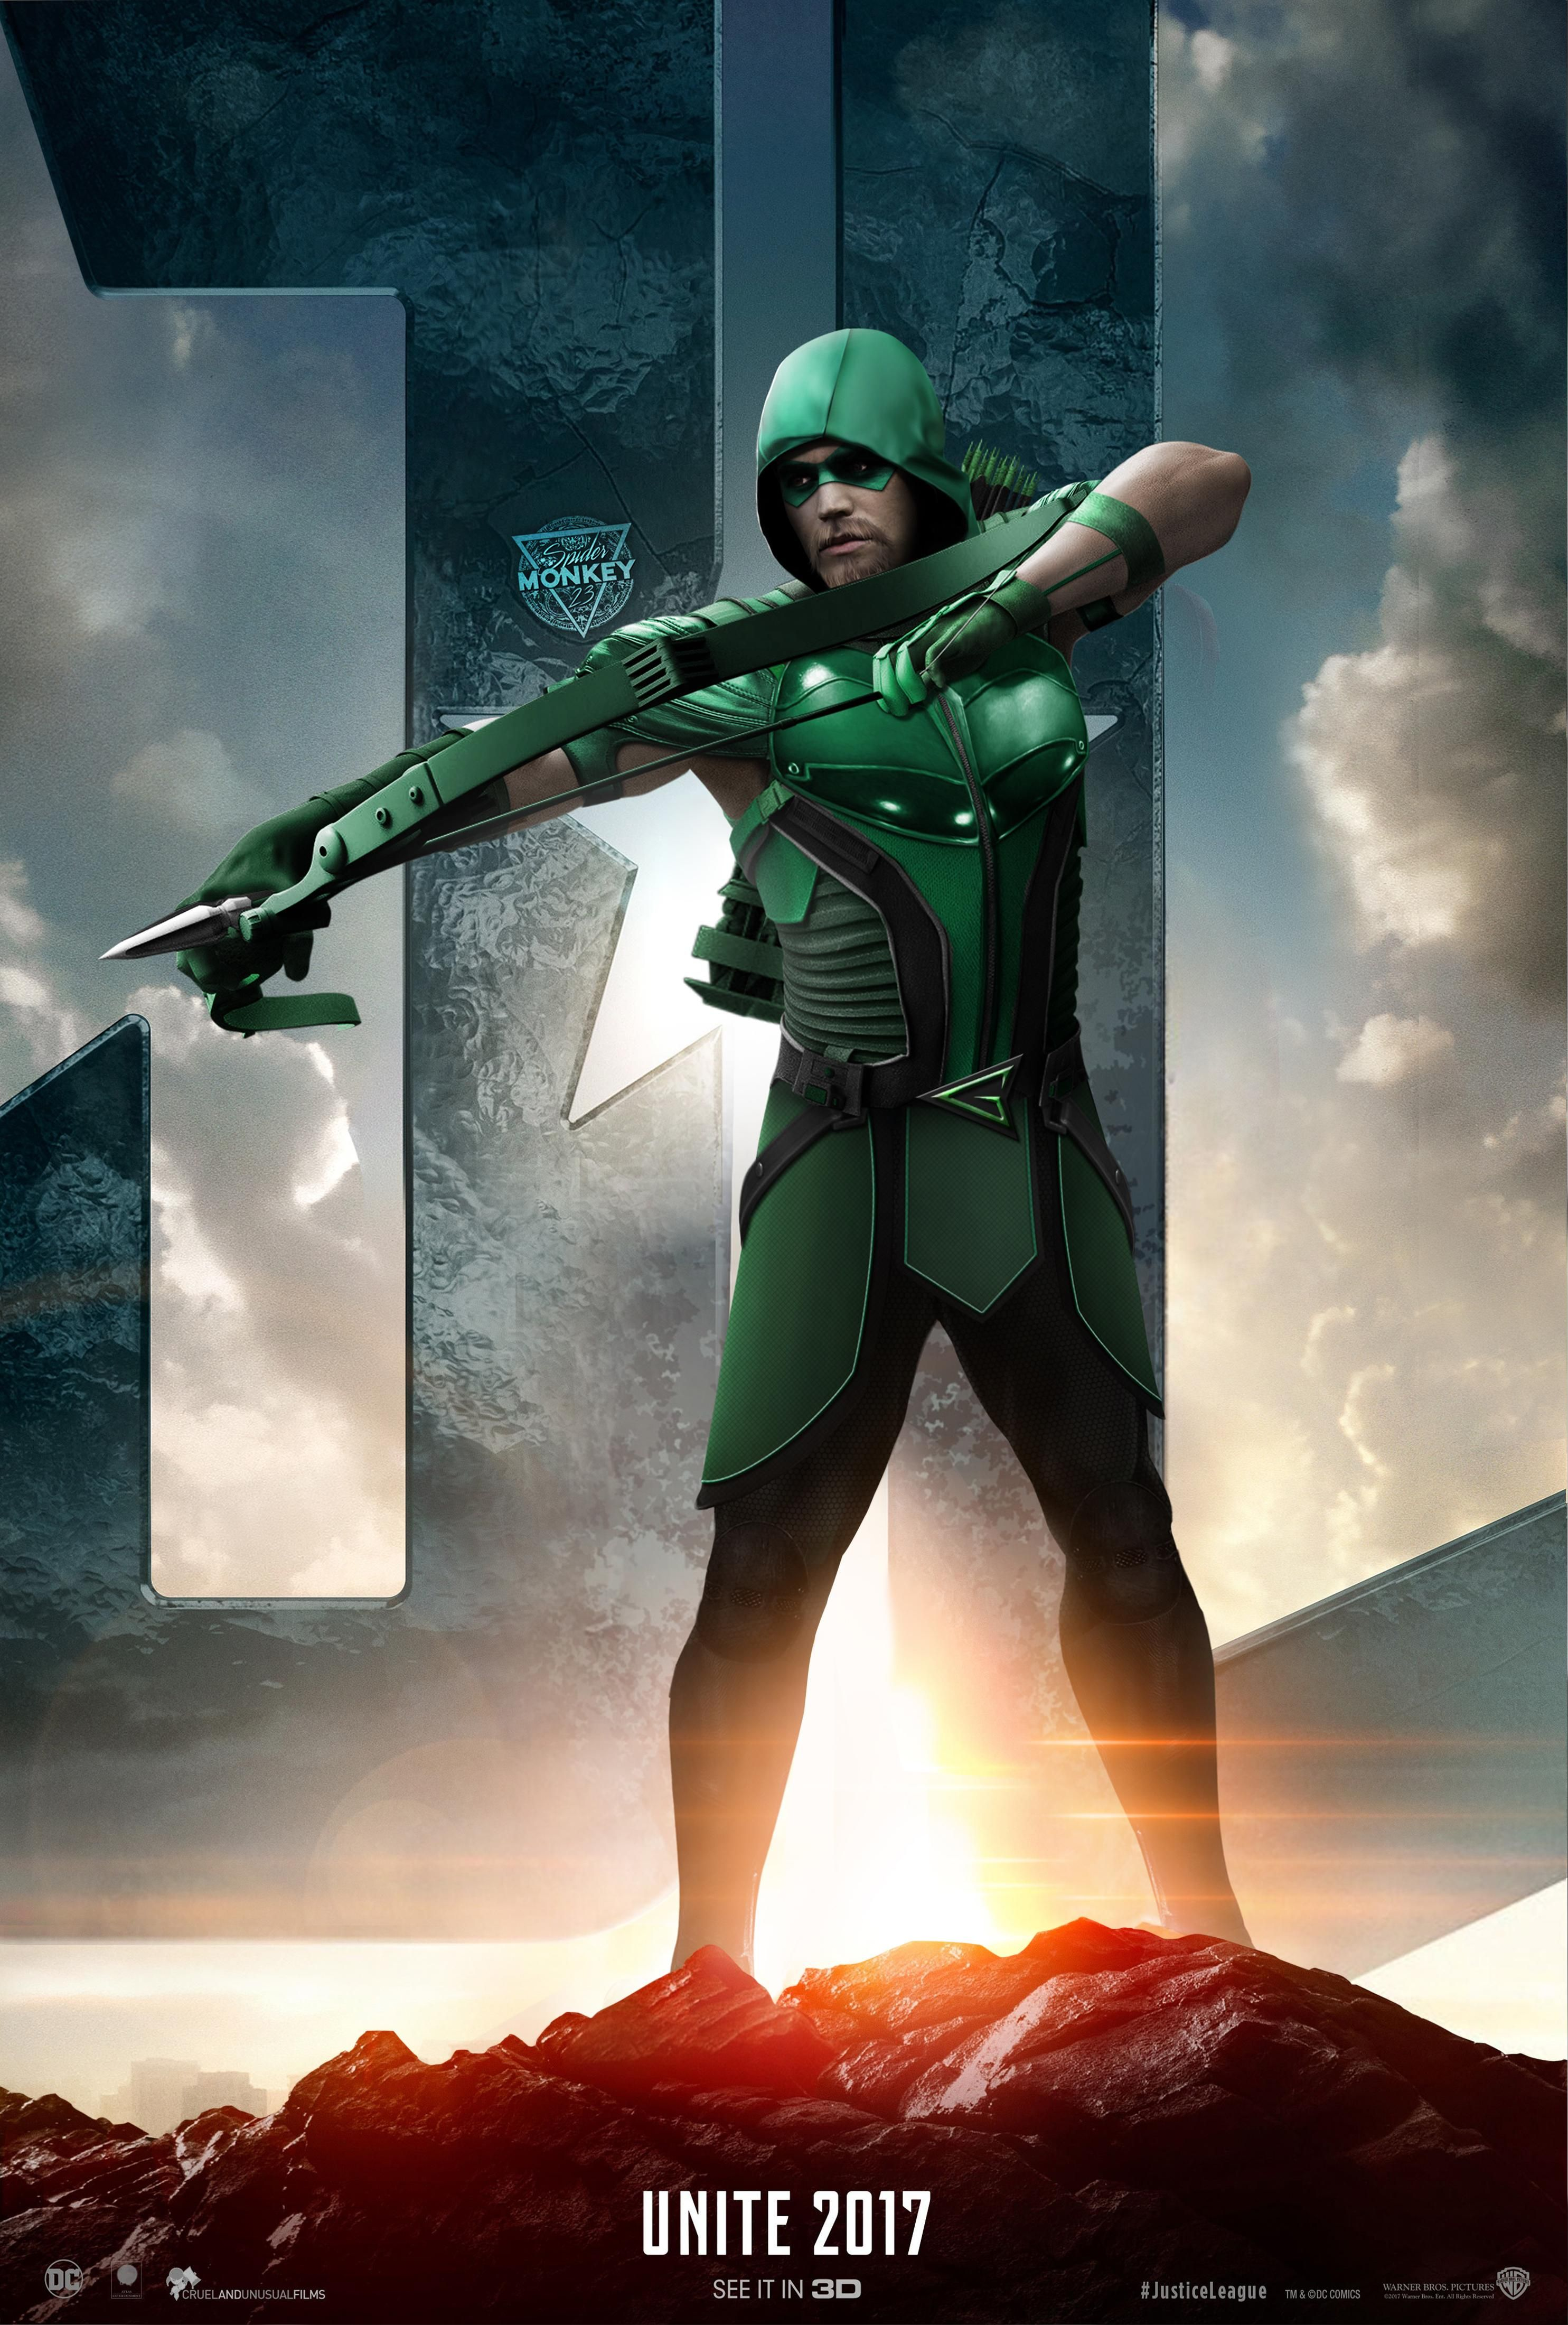 Pin by The Nomad on Justice in 2020 Green arrow, Green